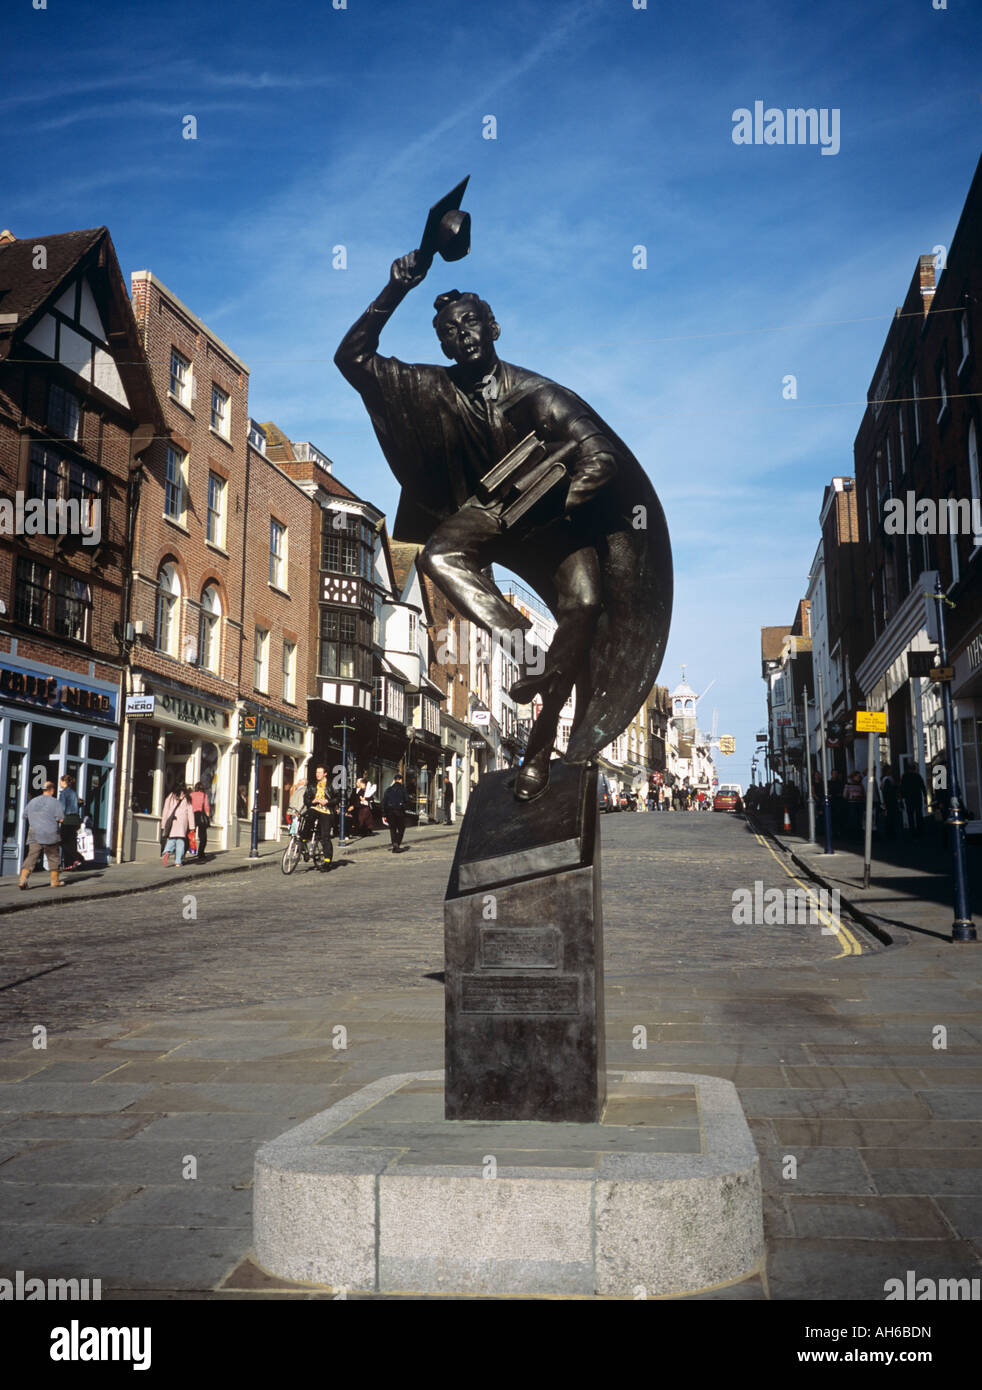 STATUE of the GUILDFORD SCHOLAR Allan Sly at the bottom of the High Street Guildford Surrey England UK - Stock Image